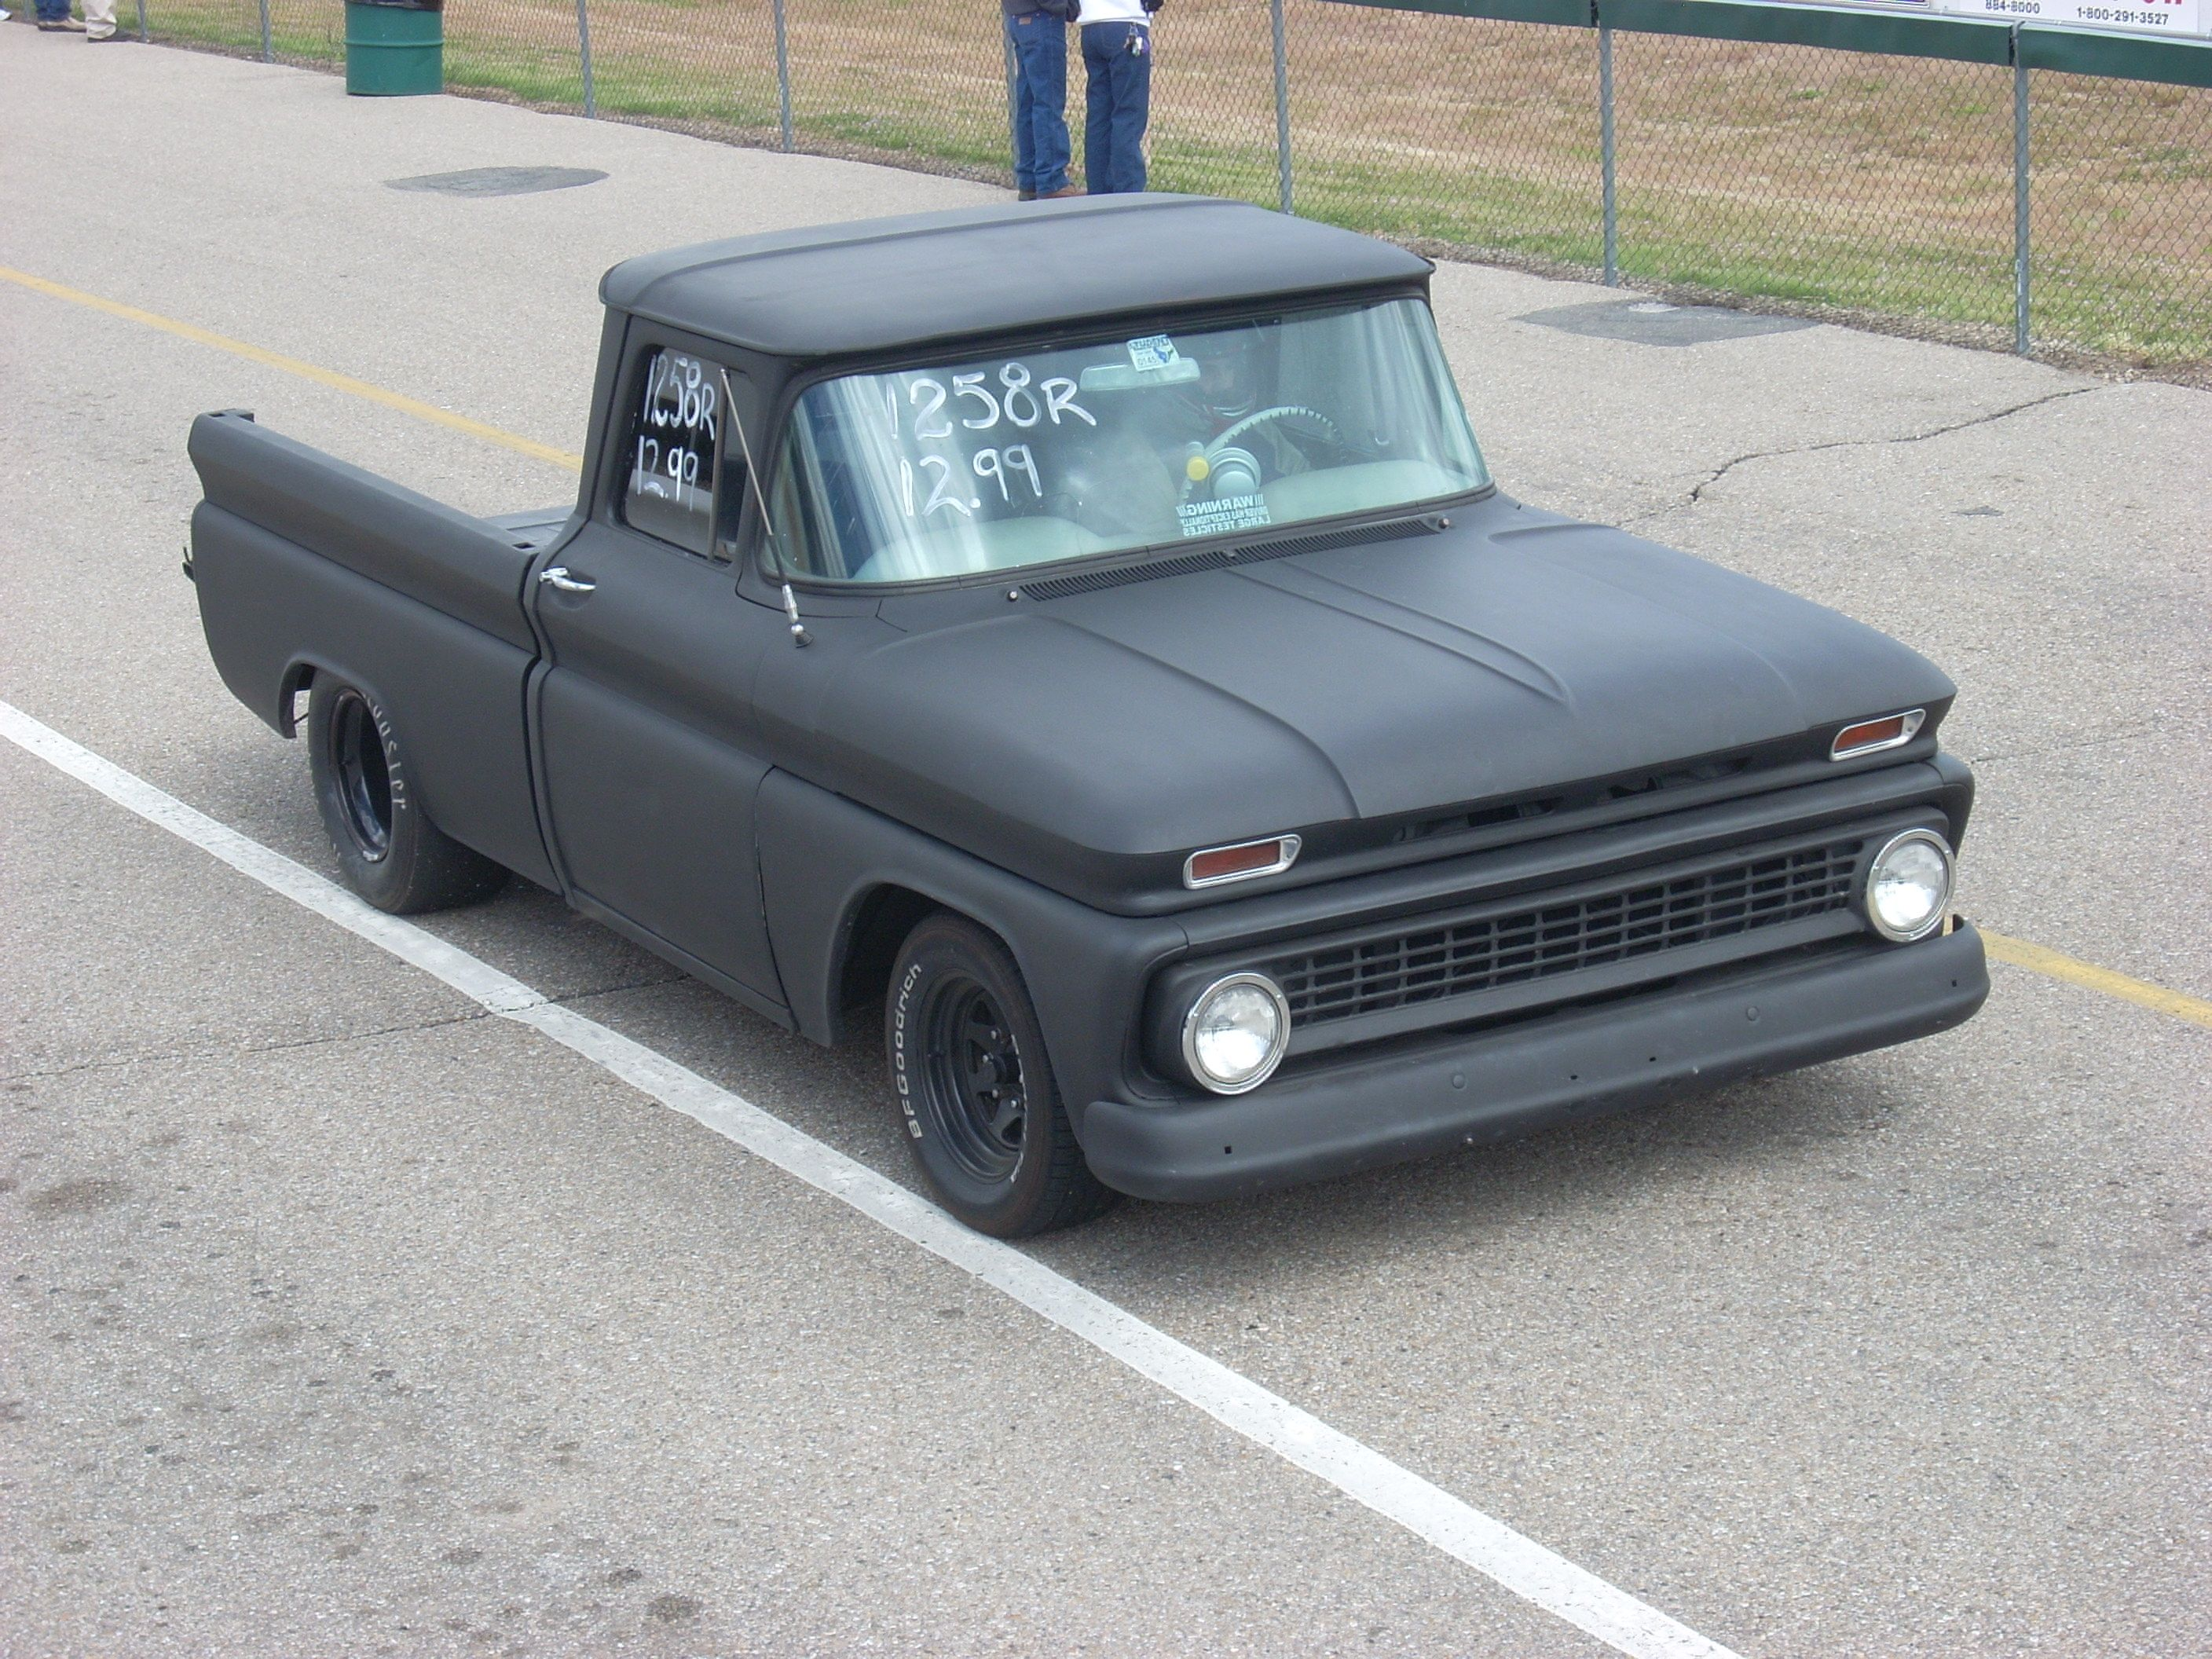 63 chevy with a 383 stroker